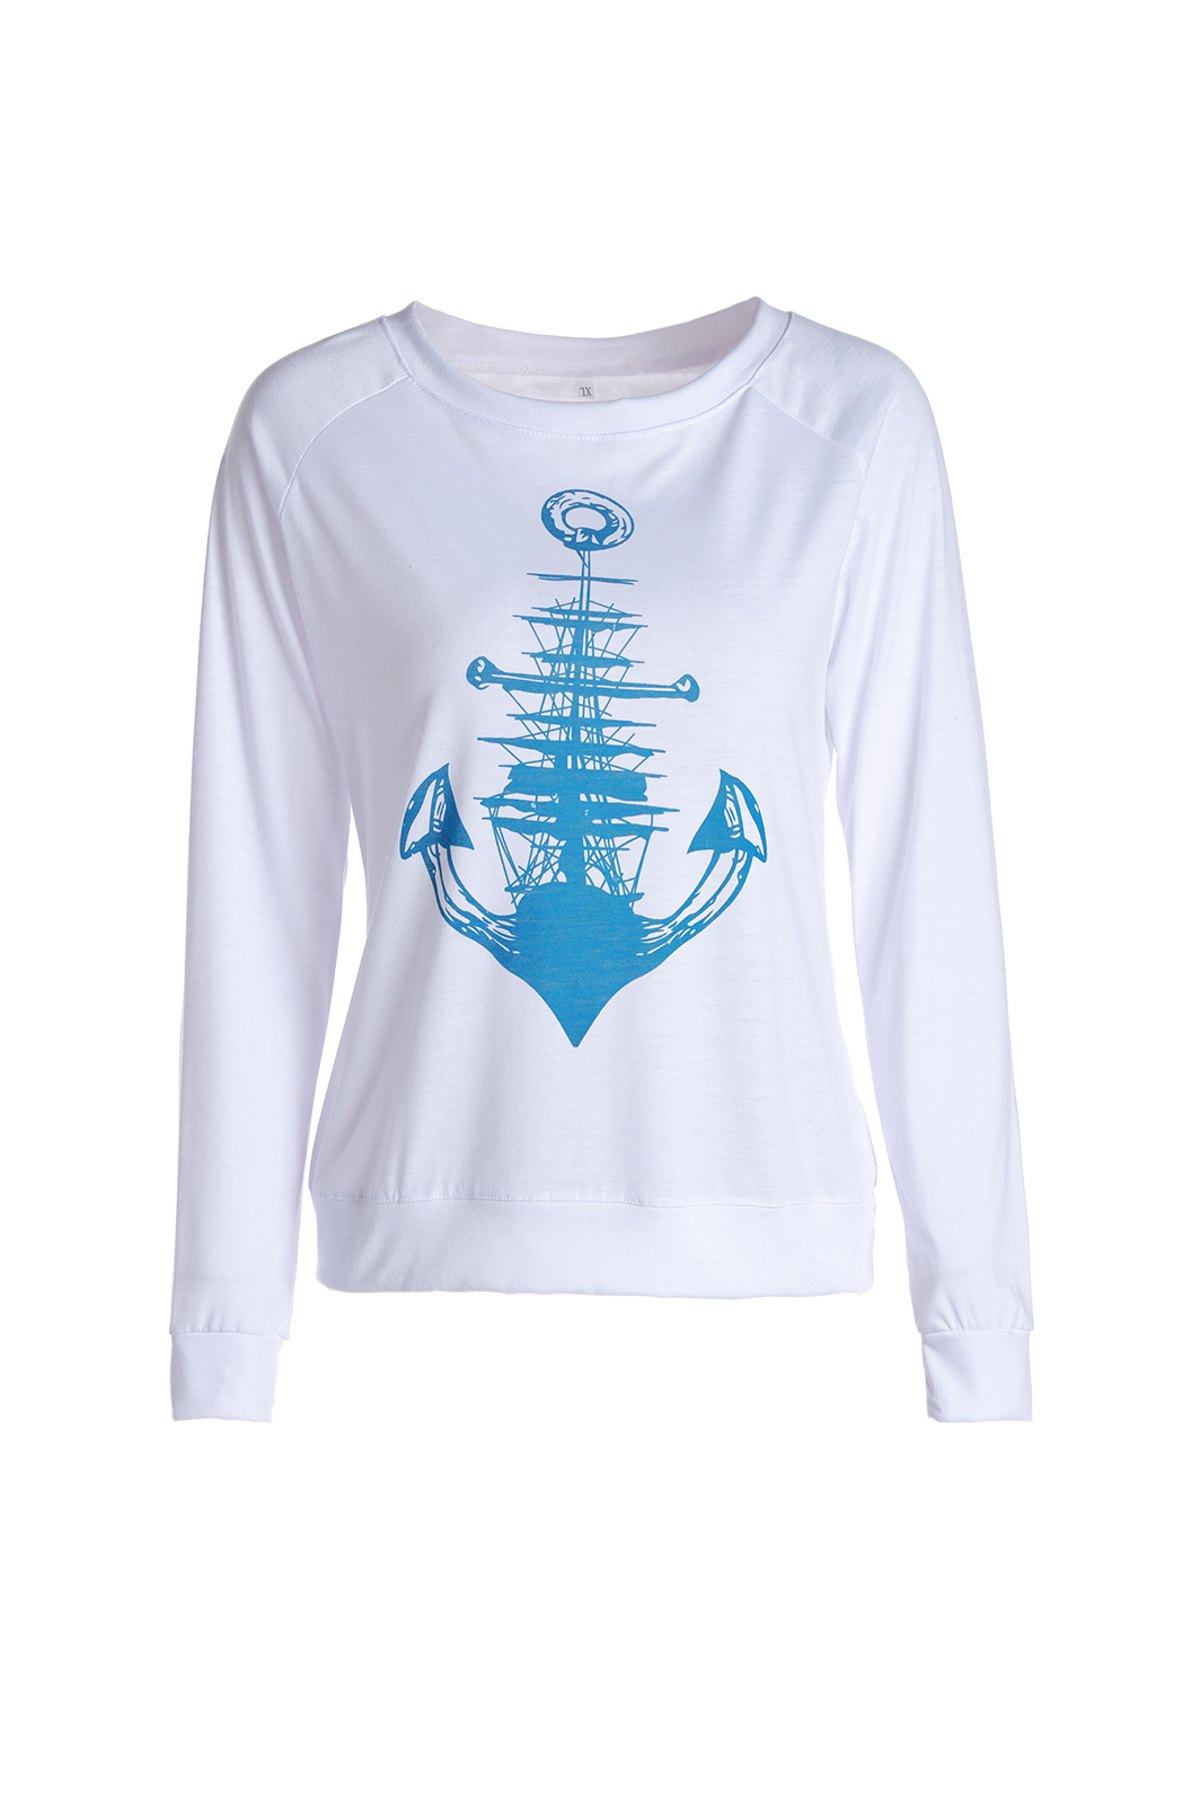 Image of Stylish Long Sleeve Anchor Printed Raglan Baseball T-Shirt For Women